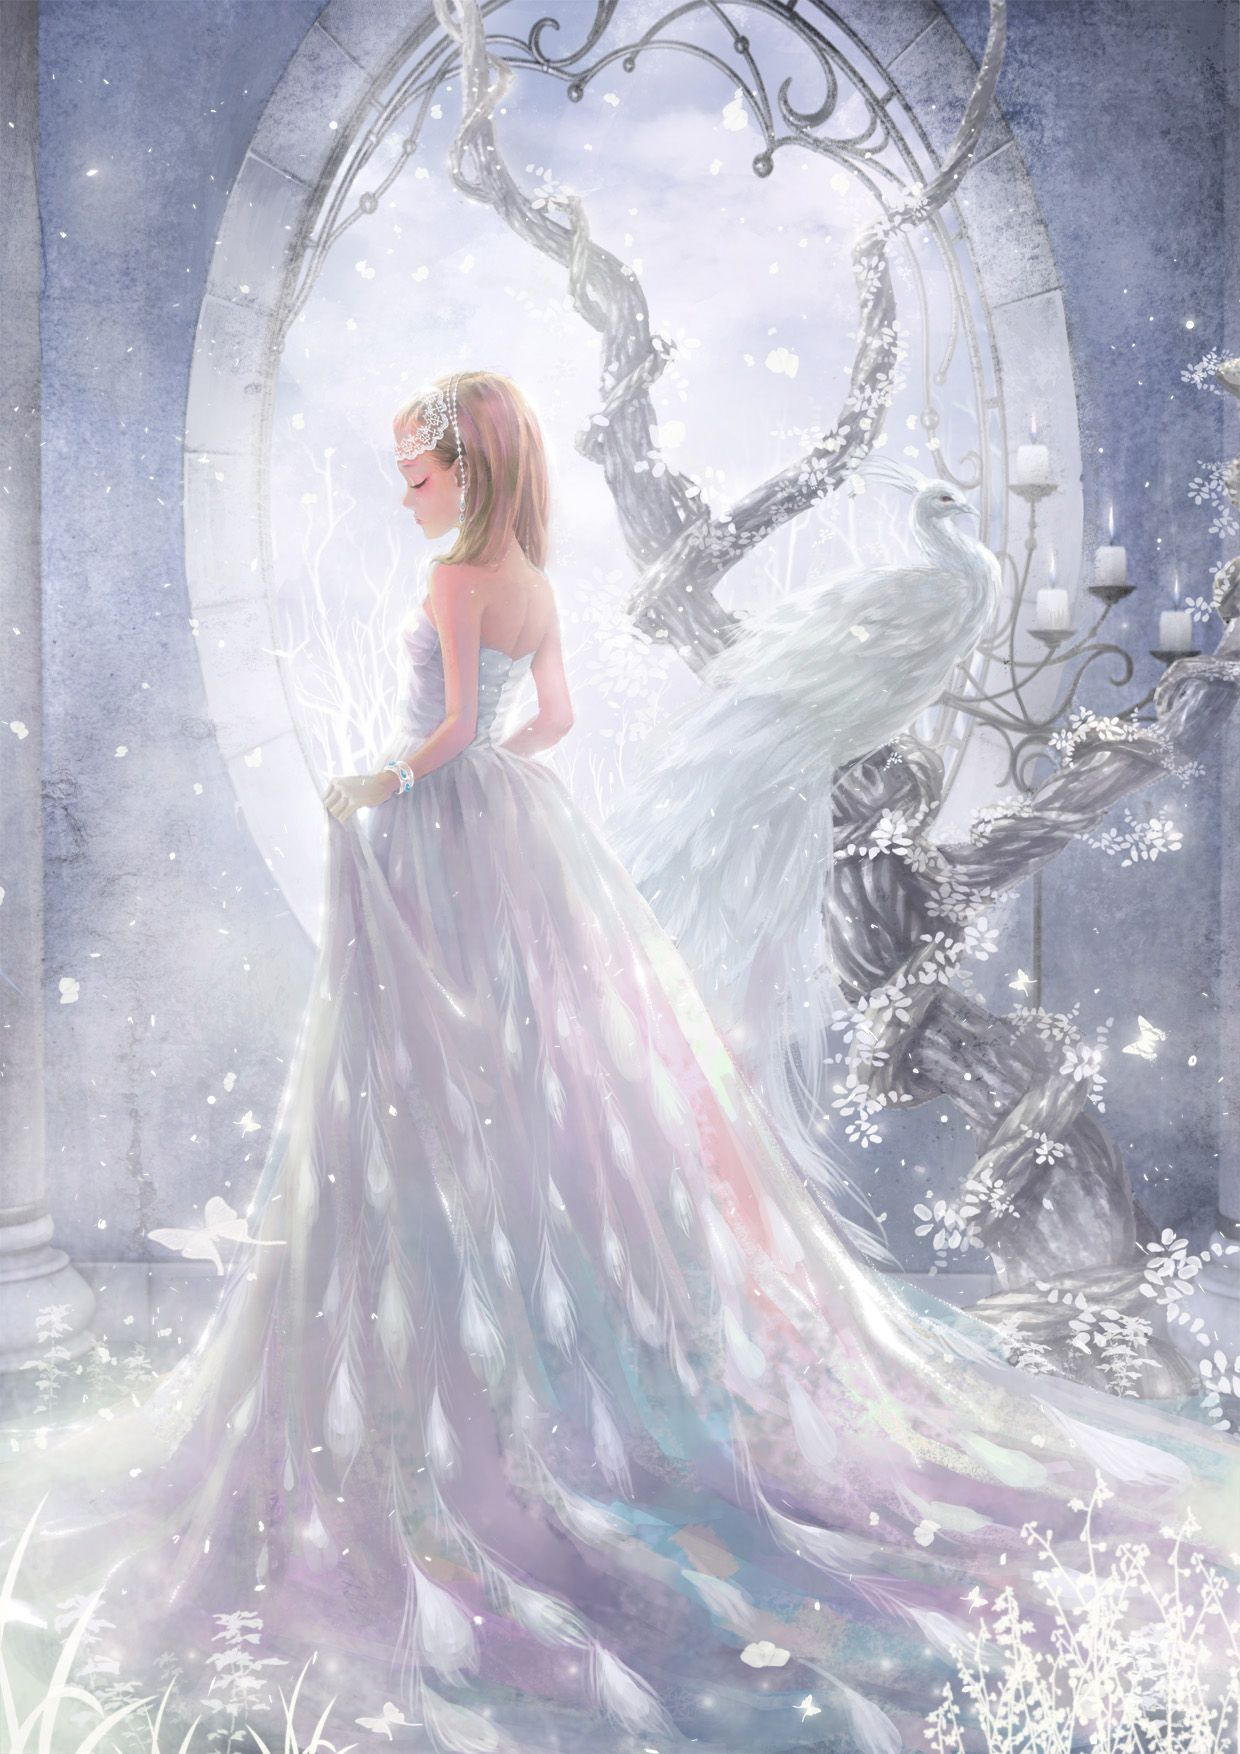 anime art japanese This is really beautiful. These